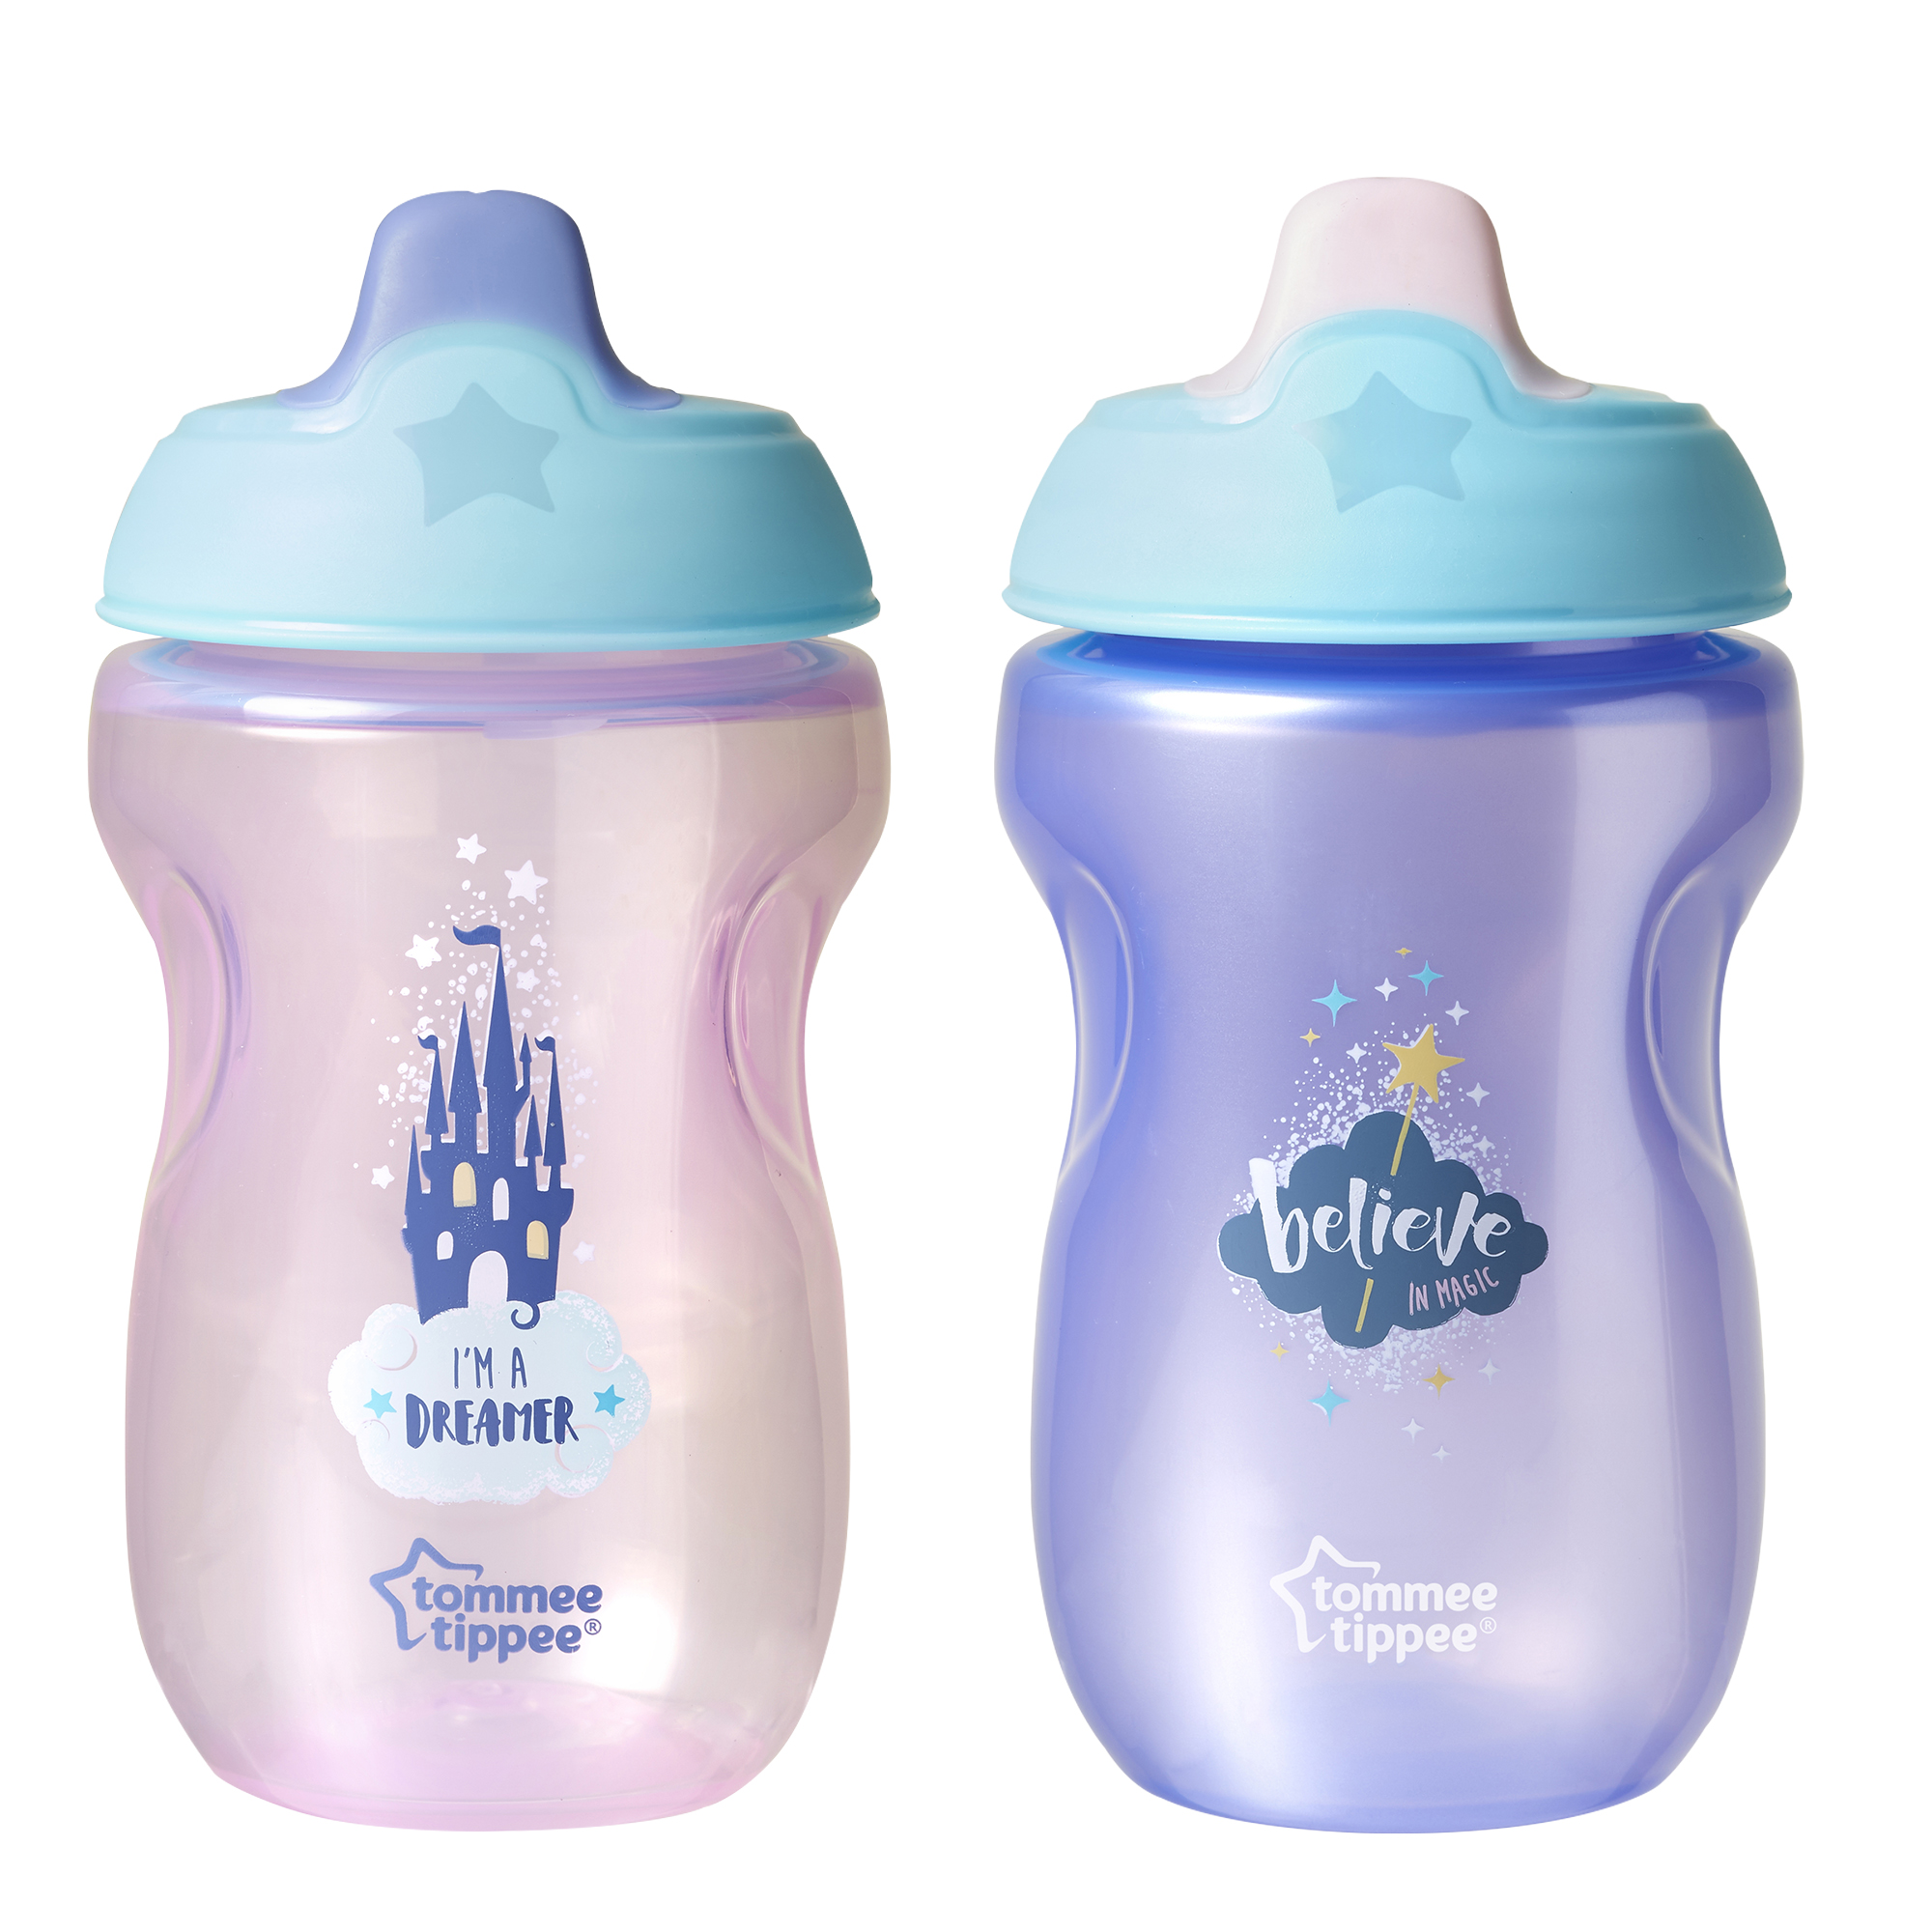 Tommee Tippee Soft Spout Sippy Cup - 2 pack